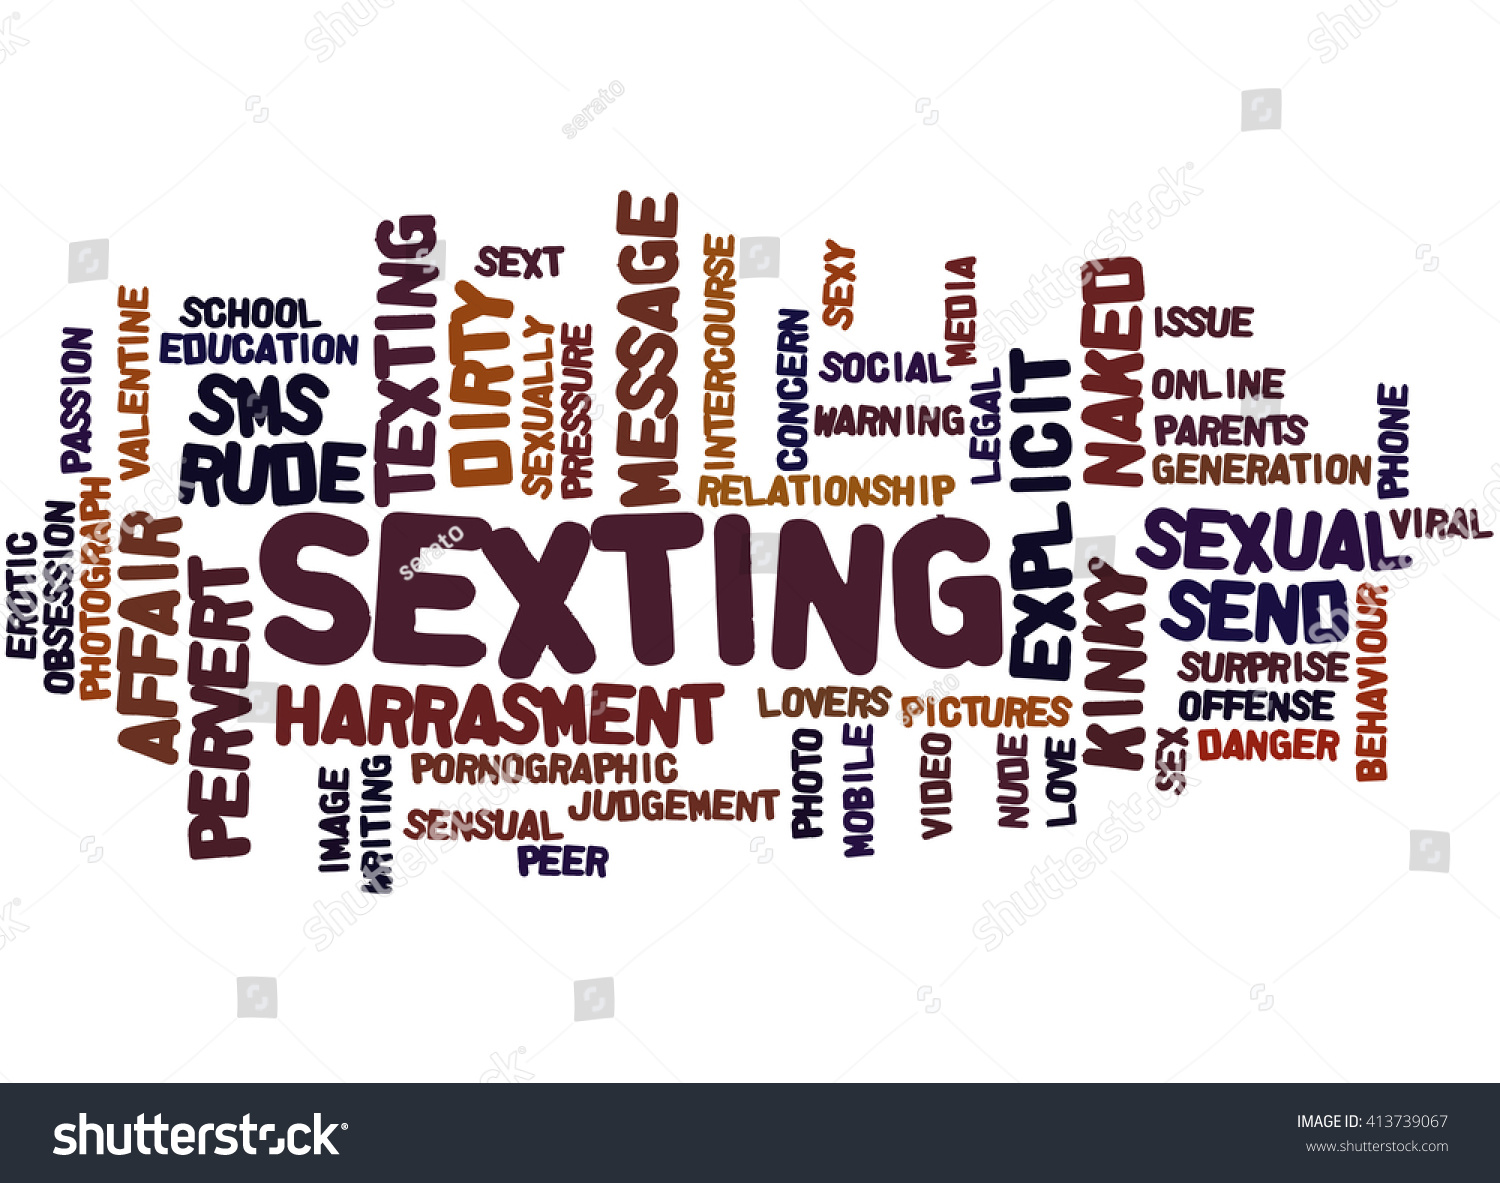 Sexting word cloud concept on white stock illustration 413739067 sexting word cloud concept on white background biocorpaavc Choice Image